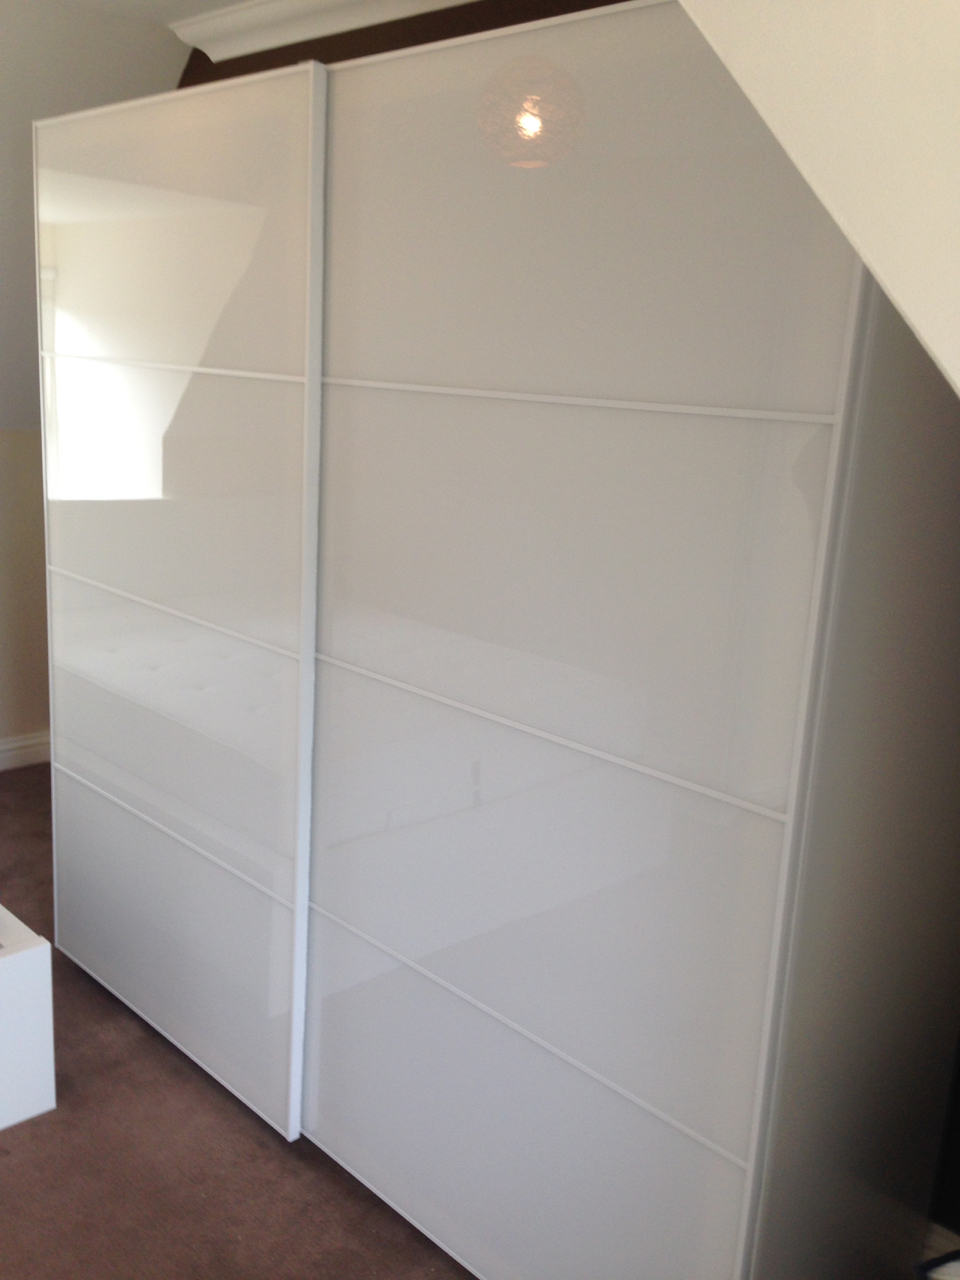 Ikea PAX sliding wardrobes space saving assembled by www.norwichflatpack.co.uk